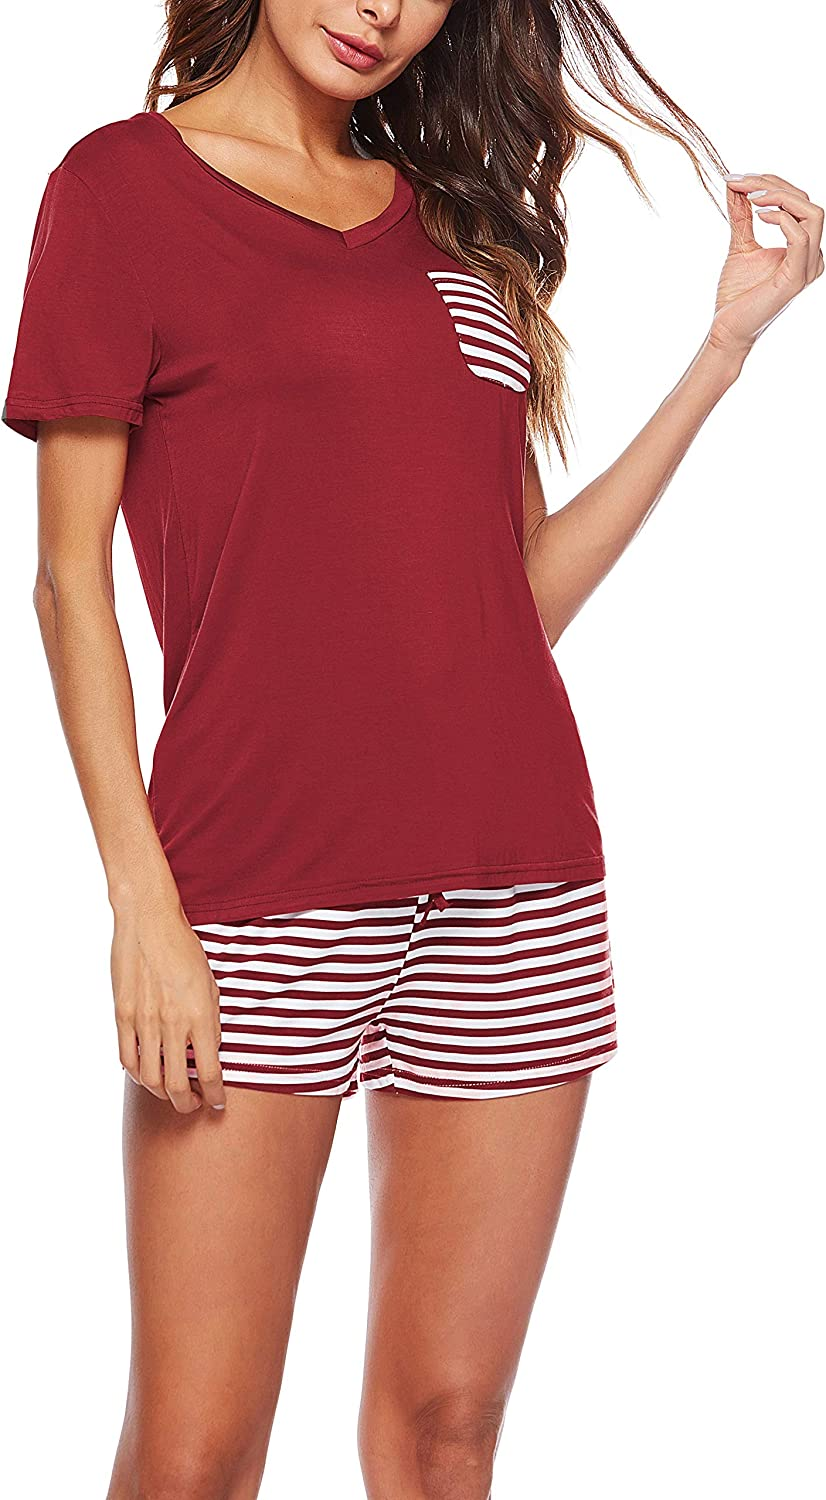 KKSSQUEEN Womens Pajama Set 2 Piece Short Sleeve V Neck Top and Striped Pants Sleepwear